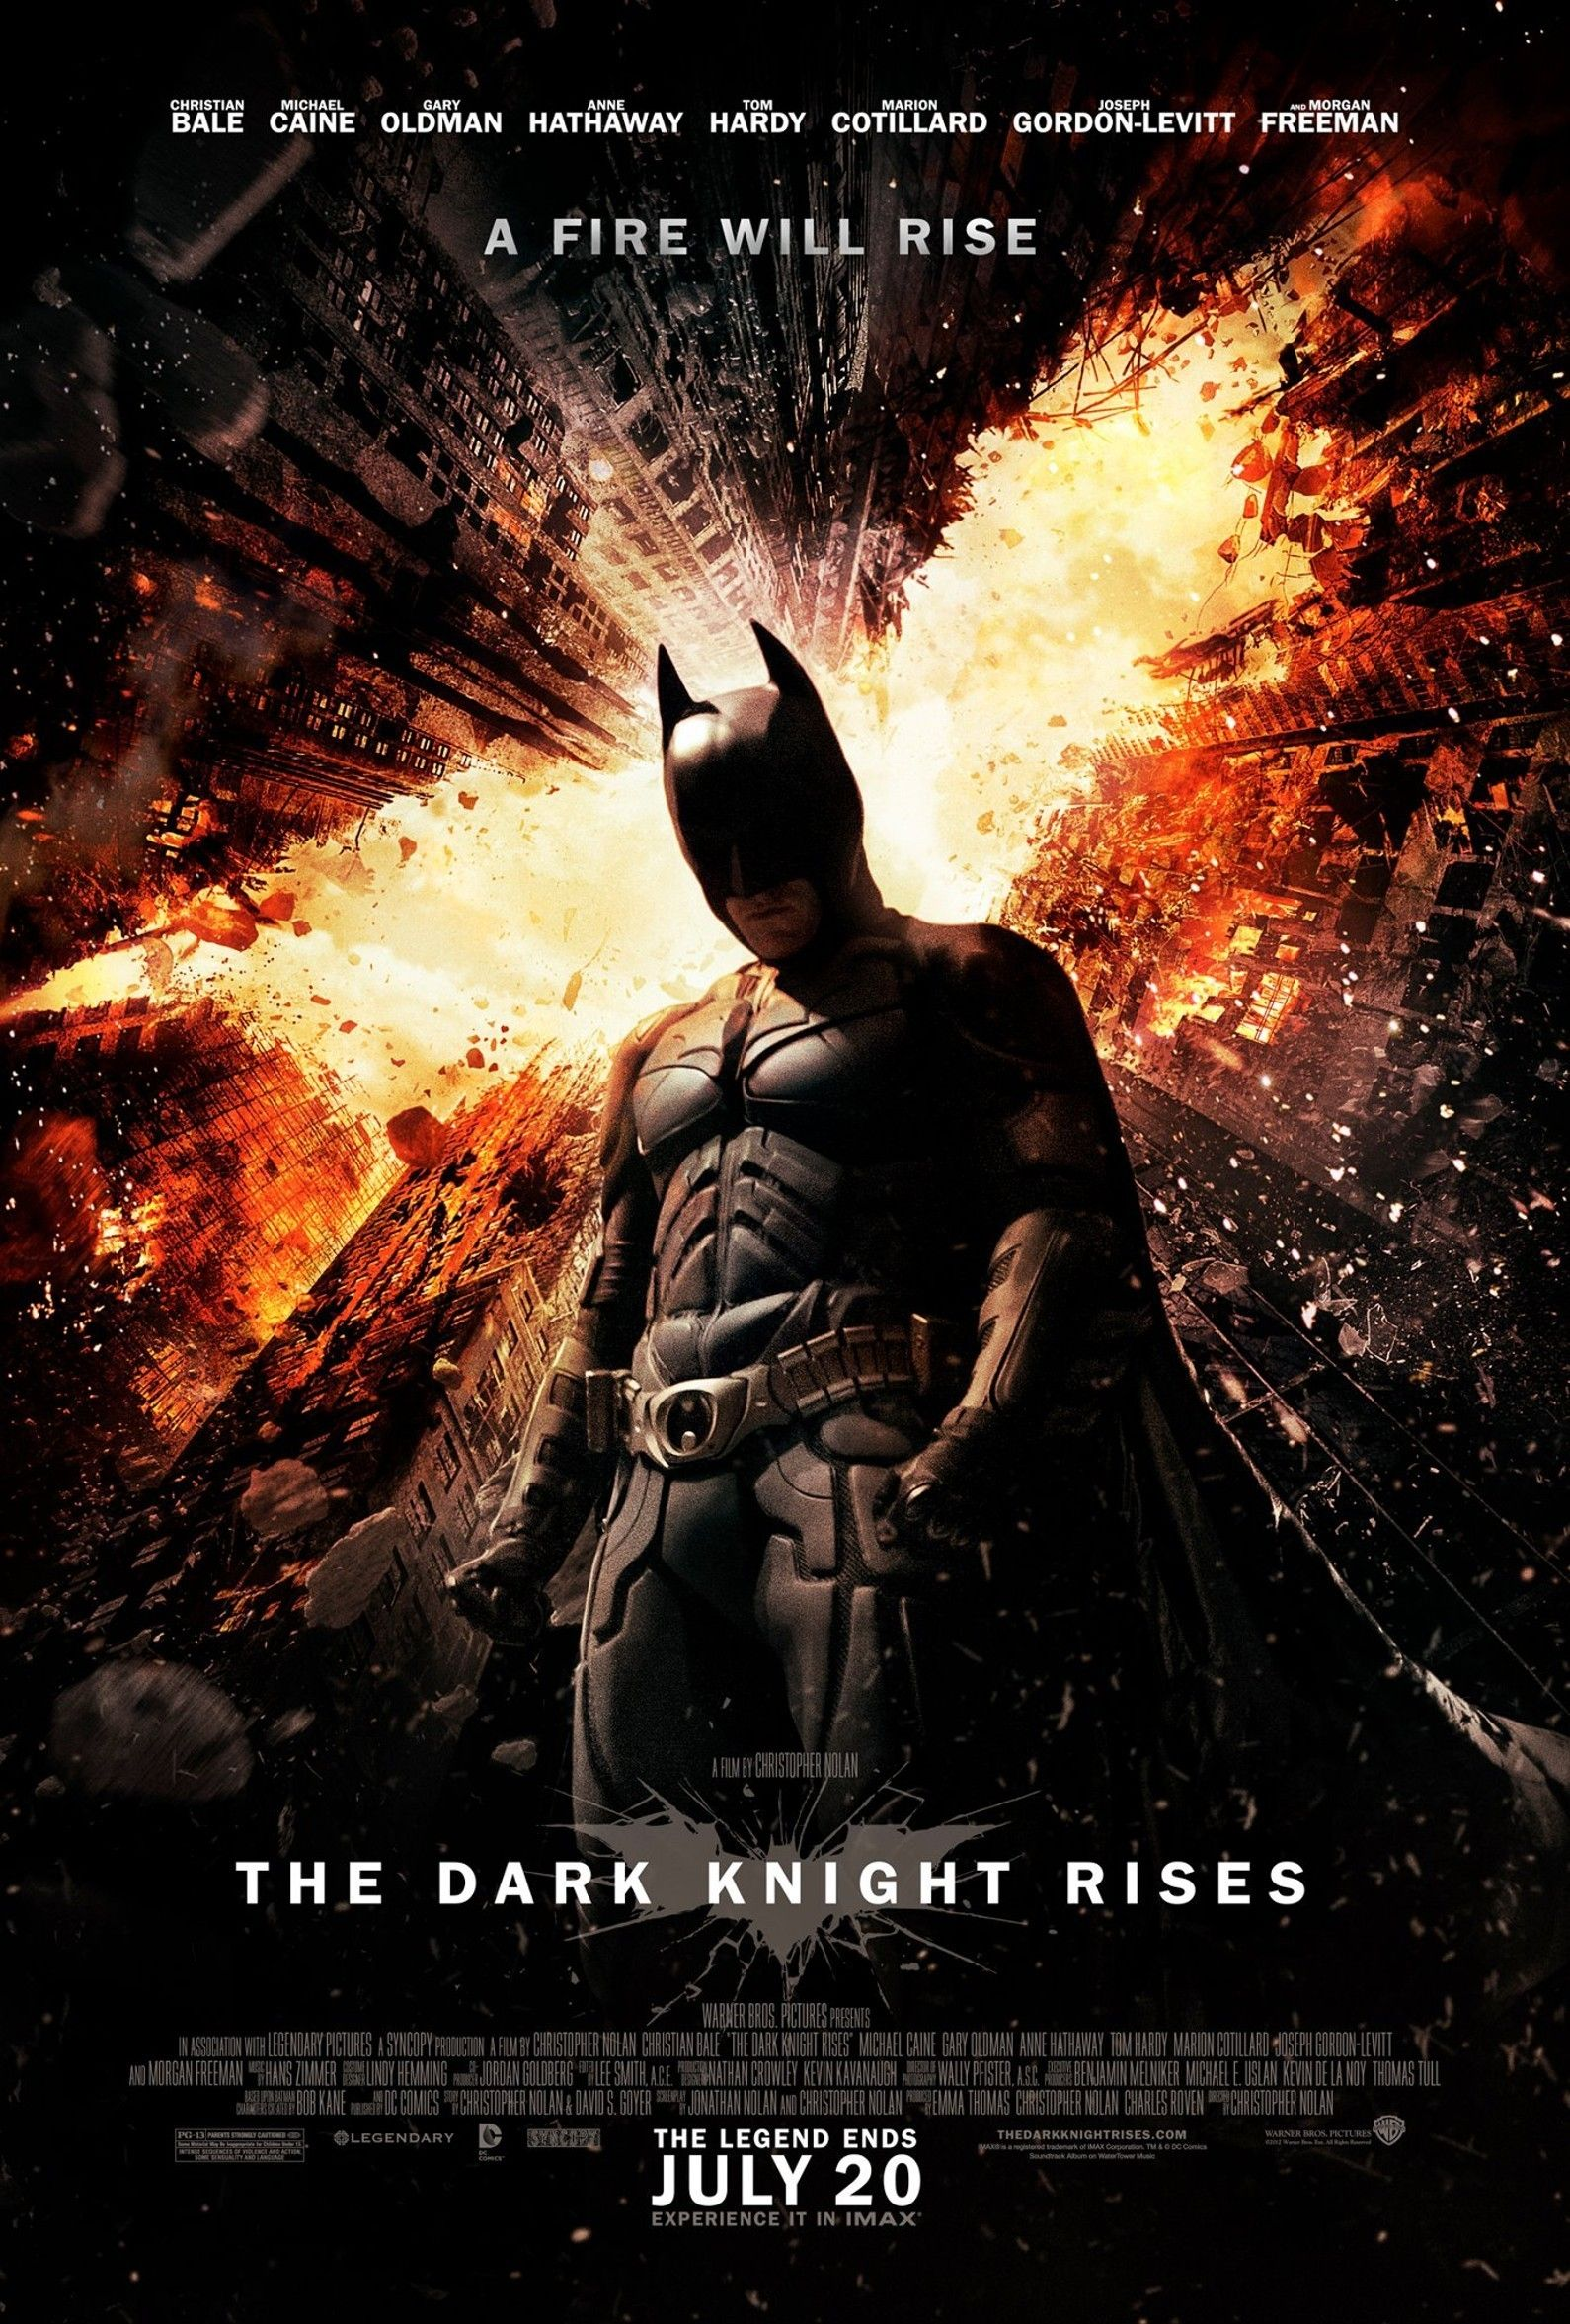 The Dark Knight Rises Gets A New Poster The Dark Knight Rises Batman The Dark Knight The Dark Knight Trilogy